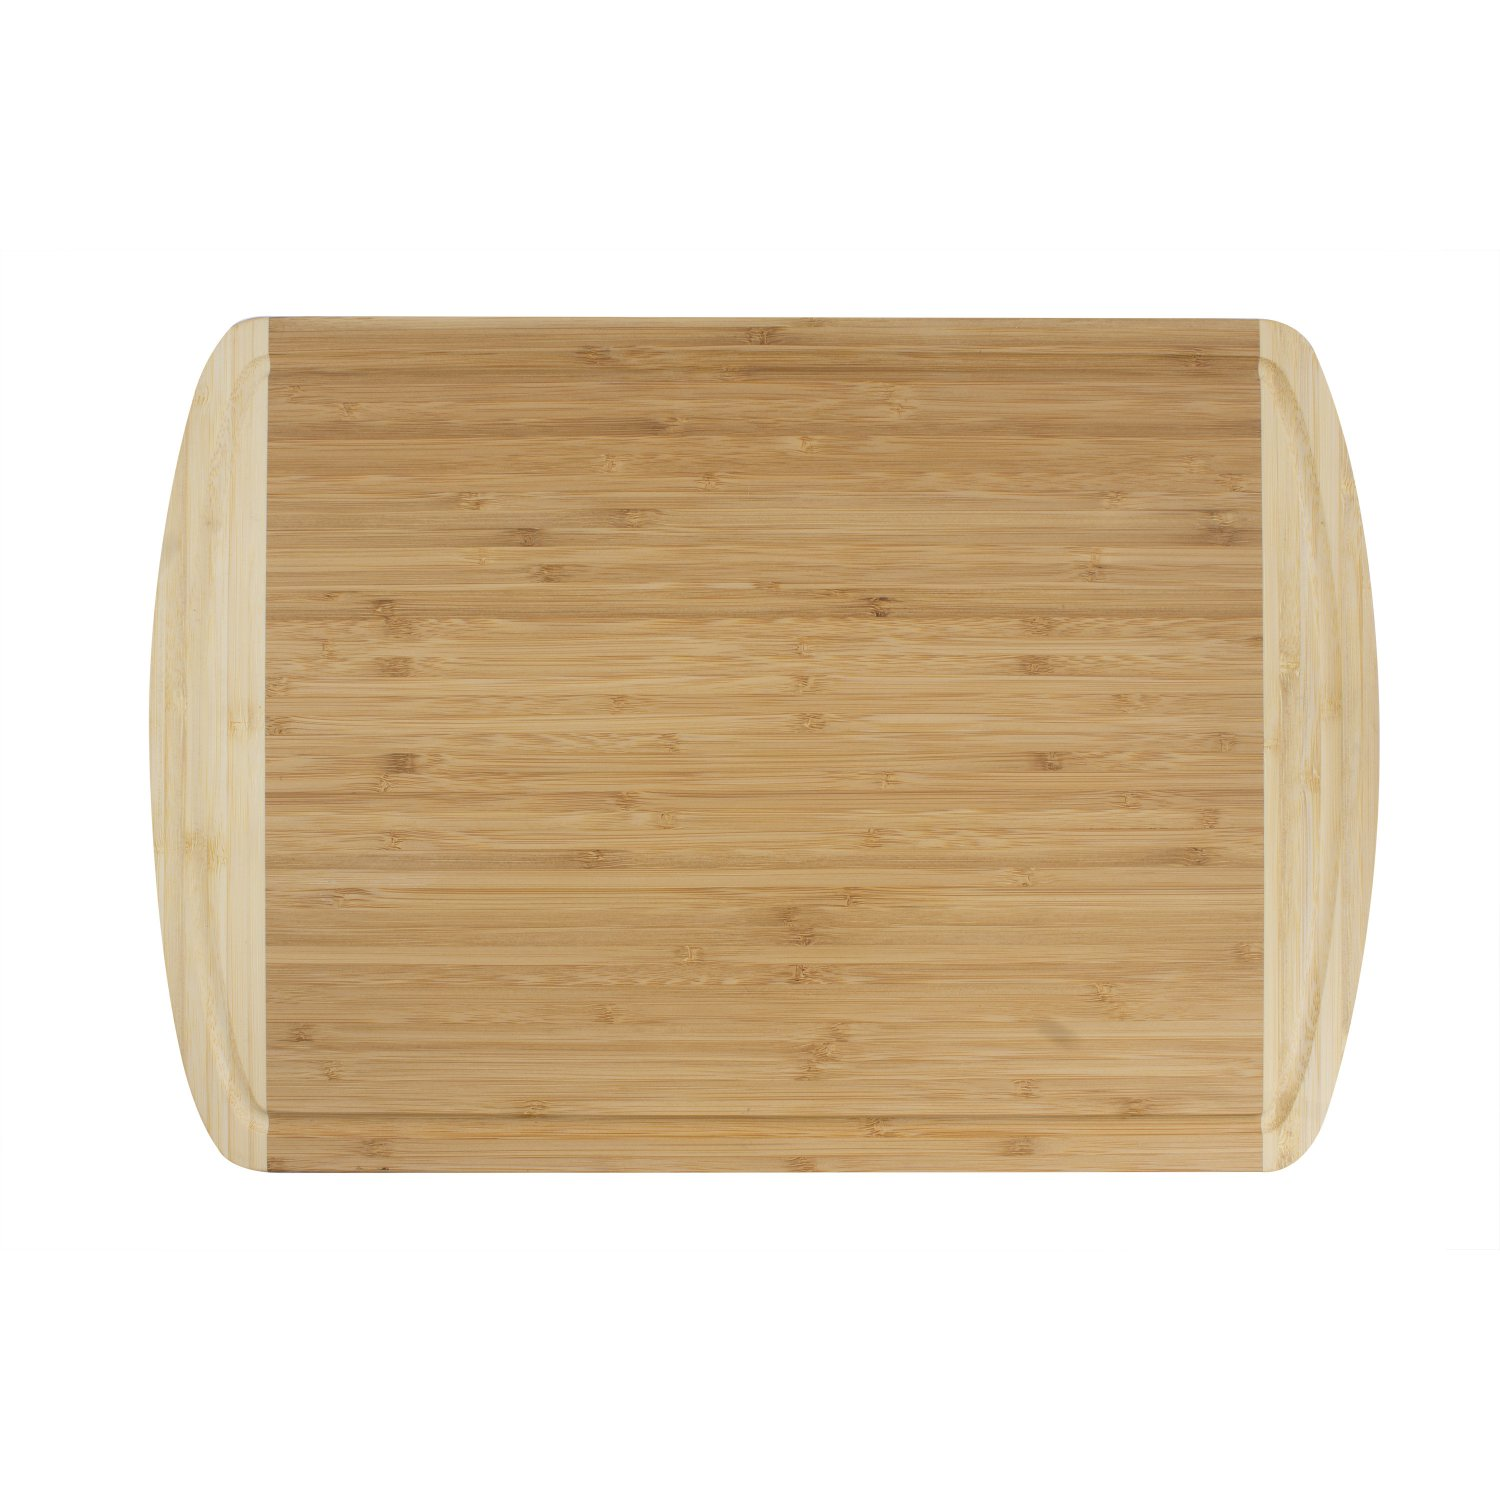 Chef's Secret Bamboo Cutting Board